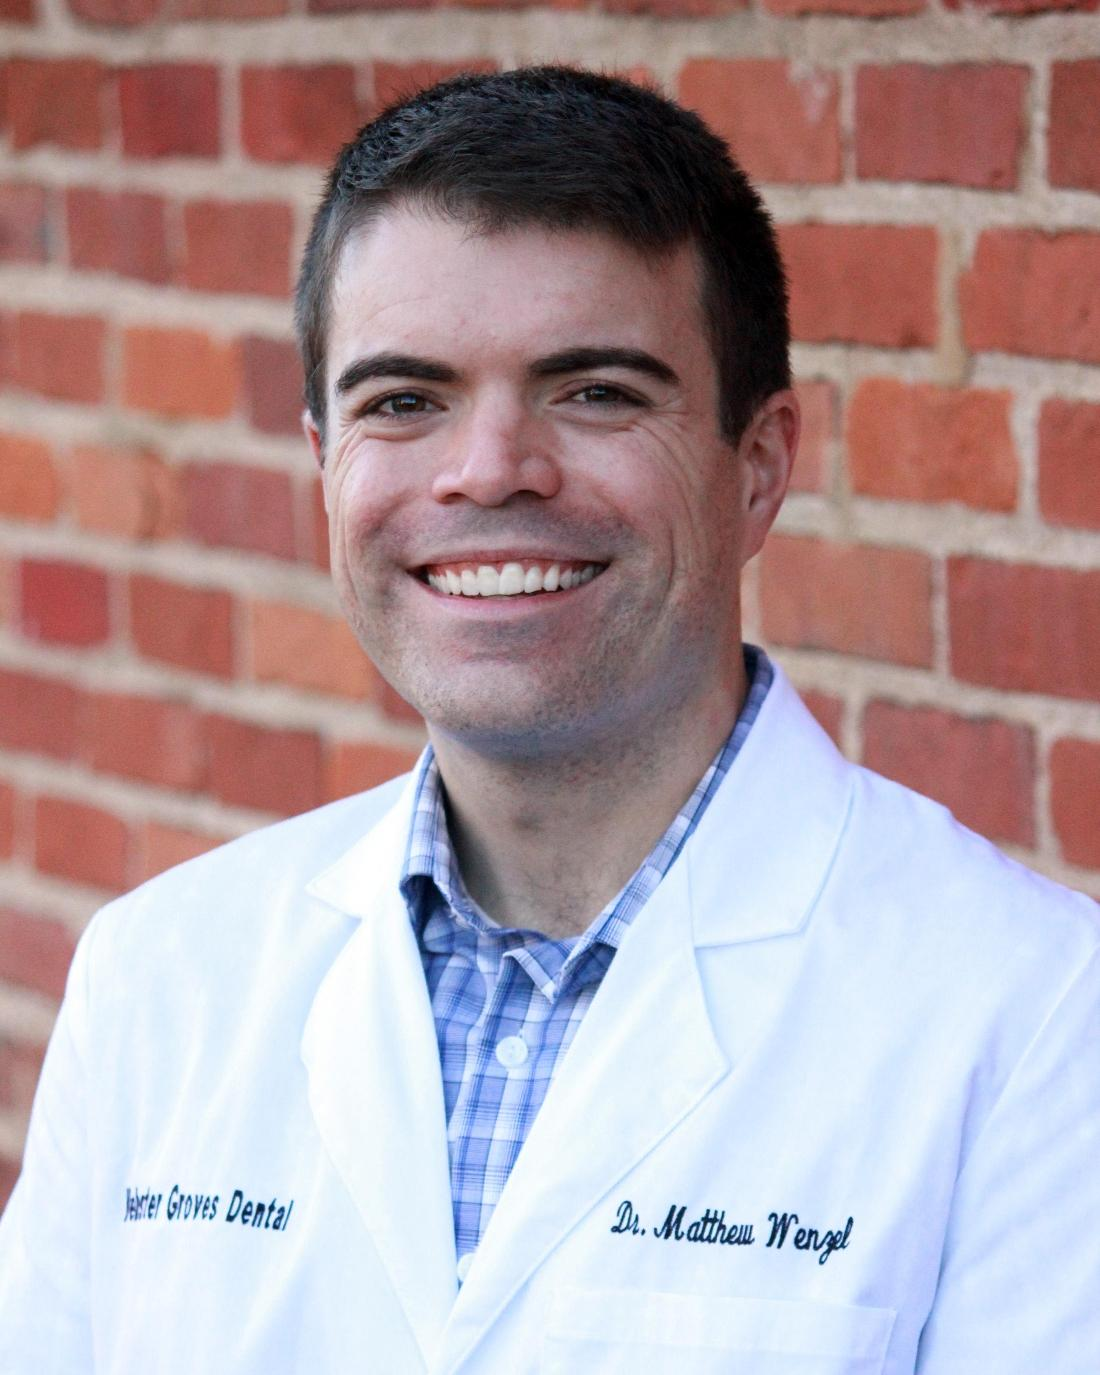 Dr. Matthew Wenzel | Webster Groves Dental